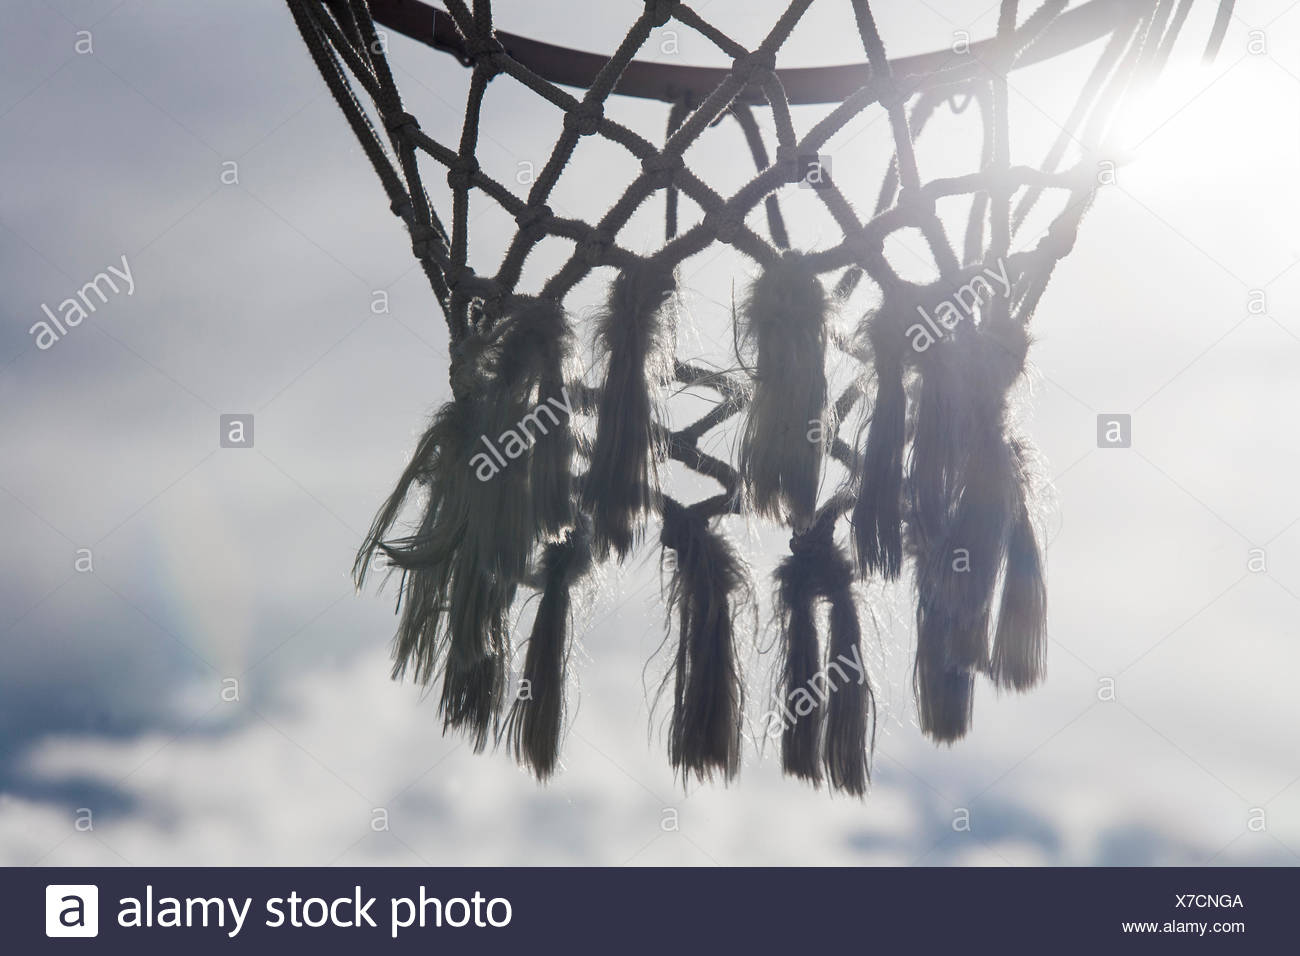 Basketball hoop crossed by sun rays - Stock Image